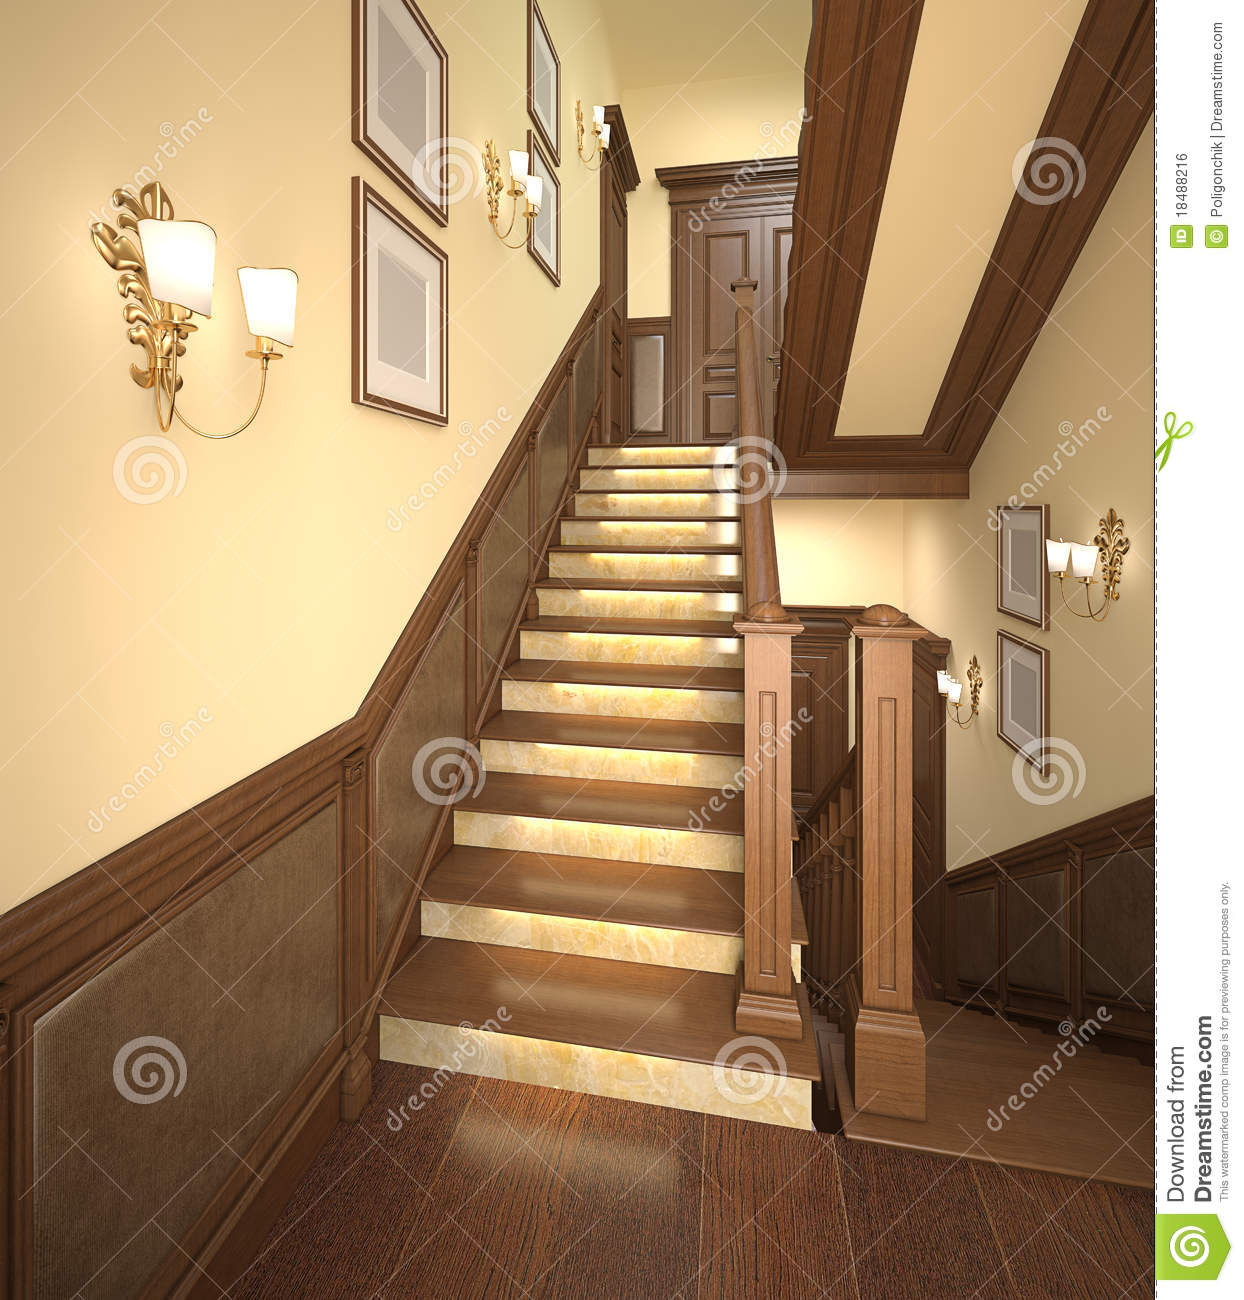 Wood stairs in the modern house royalty free stock image image 18488216 - Casas interiores decoracion ...